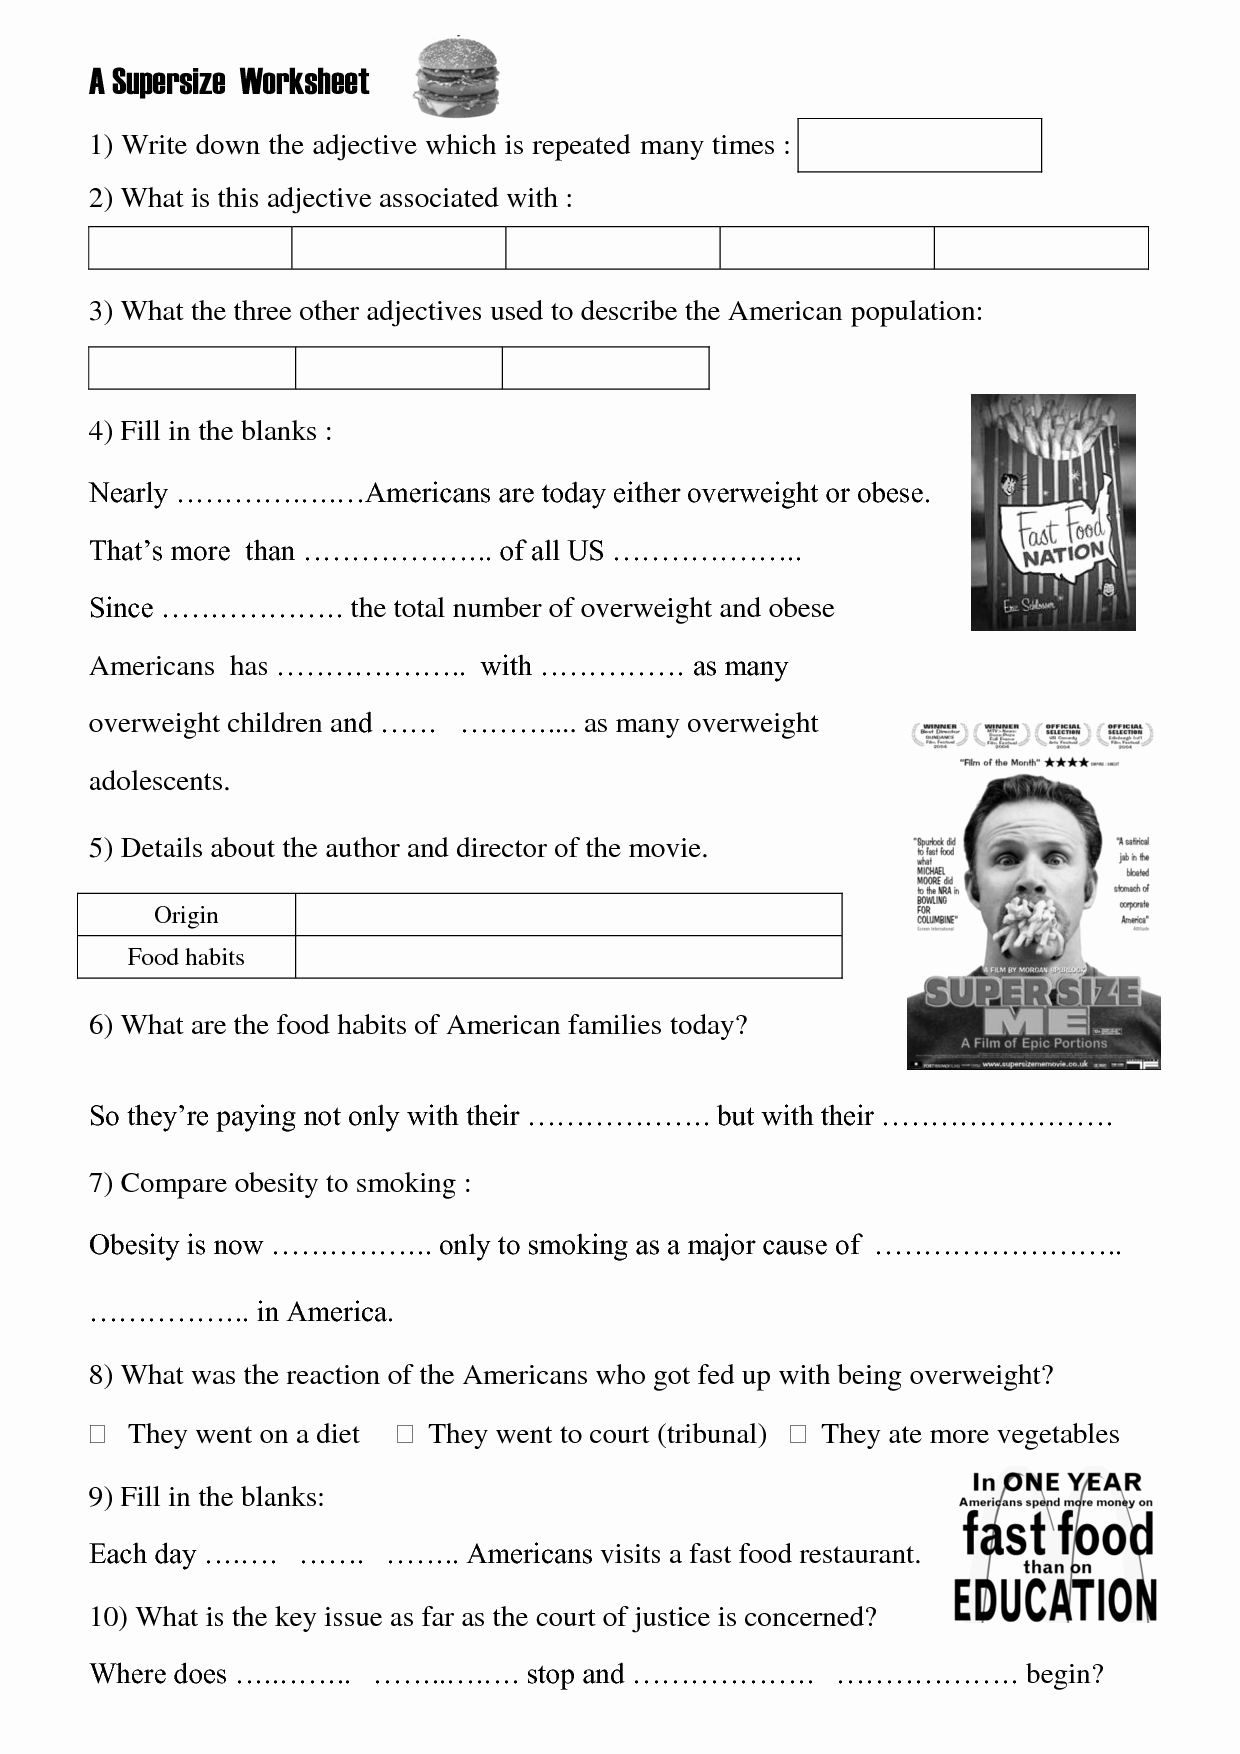 The Core Movie Worksheet Answers Lovely Movie Worksheet Super Size Me Esl